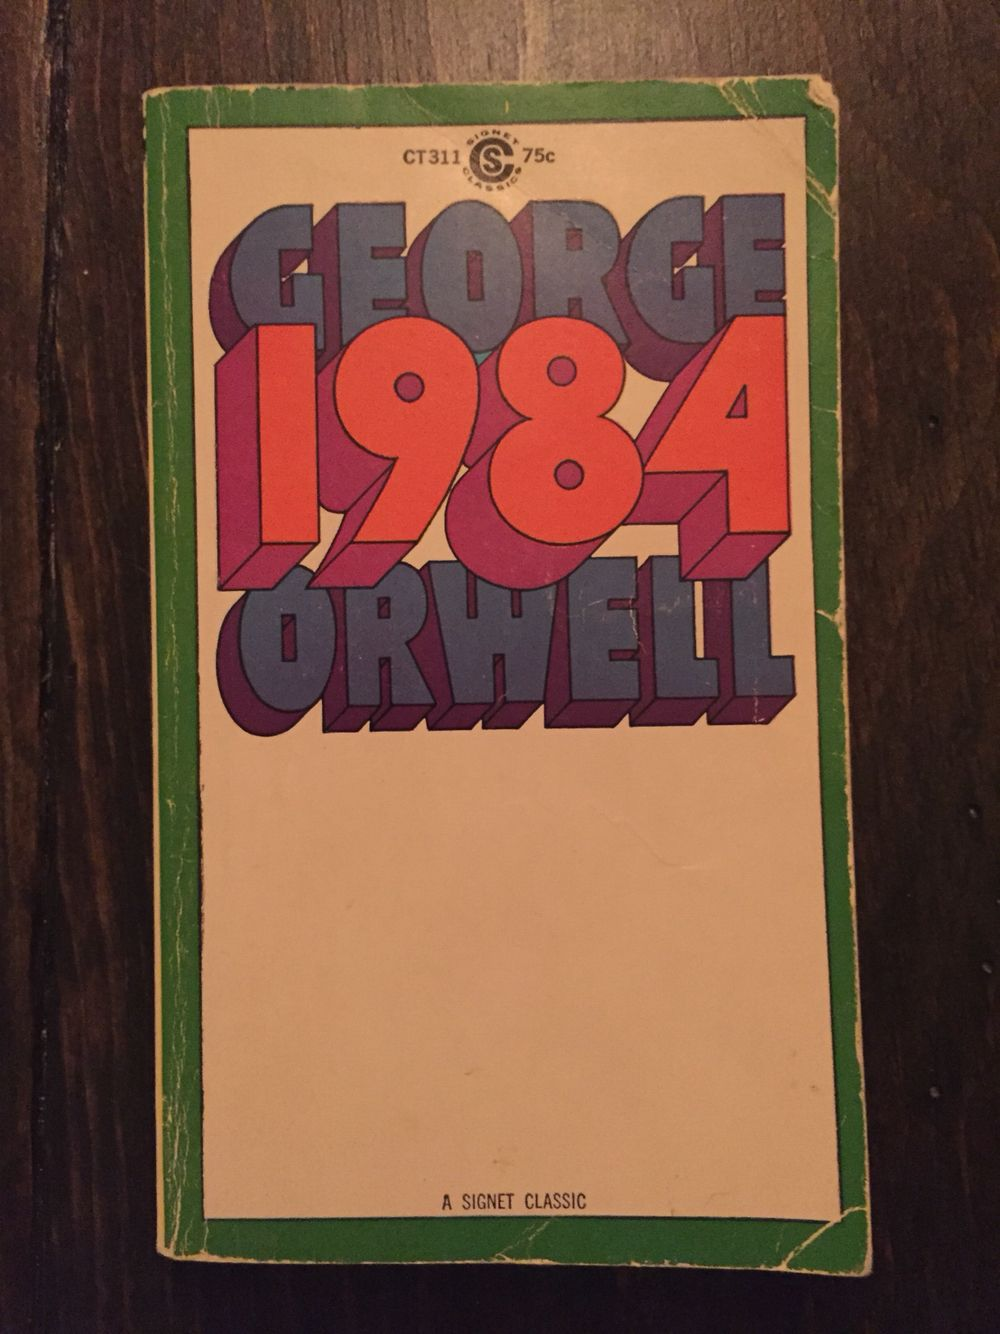 1984 George Orwell Yard Sale Books Pinterest Yard Sale